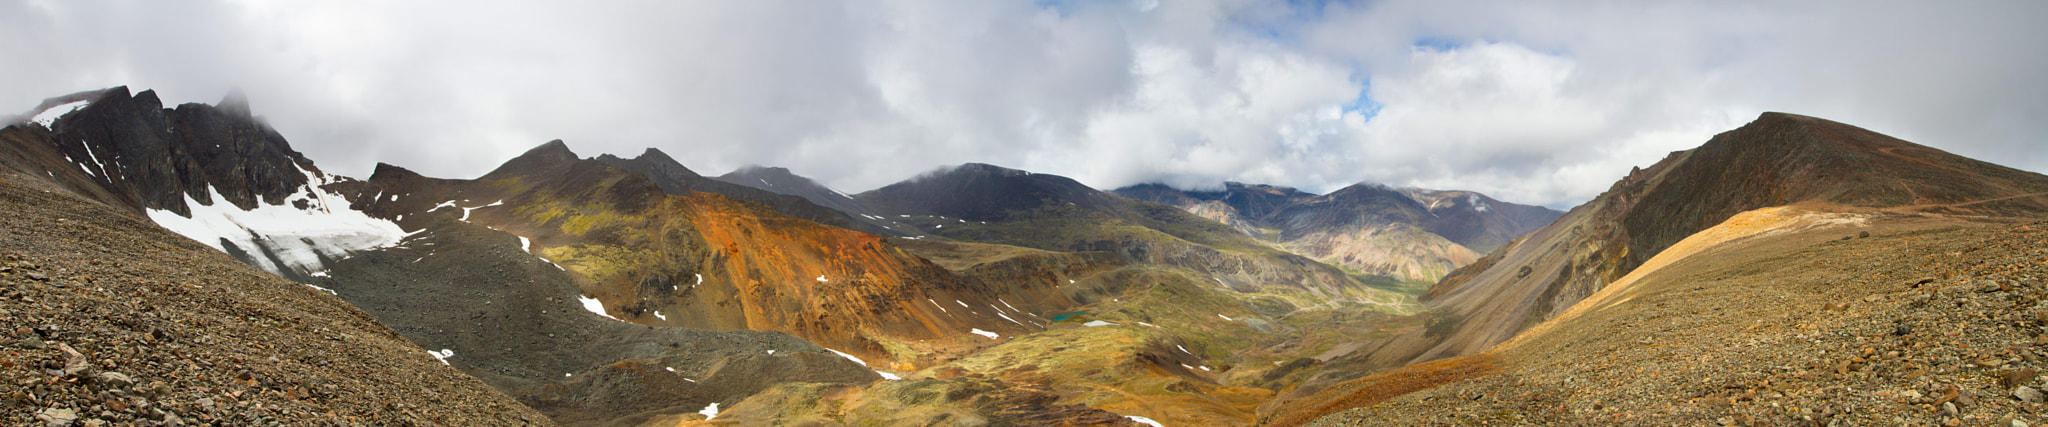 Photograph Mt Skukum Panorama (click to enlarge) by Nicolas Dory on 500px